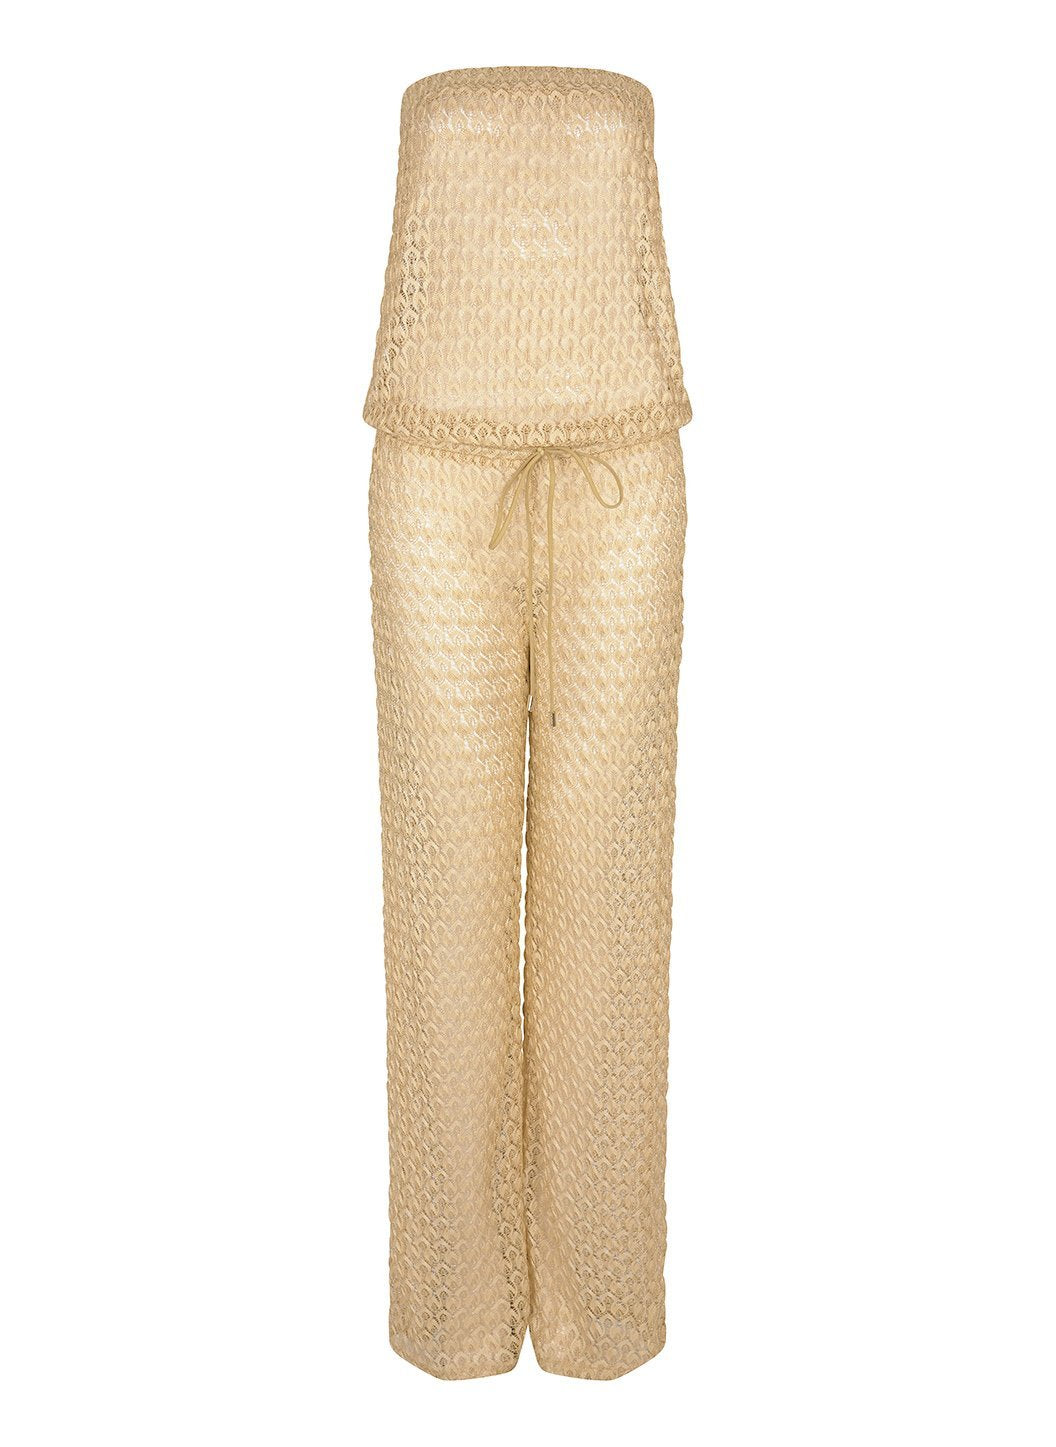 grace gold knit bandeau jumpsuit 2019